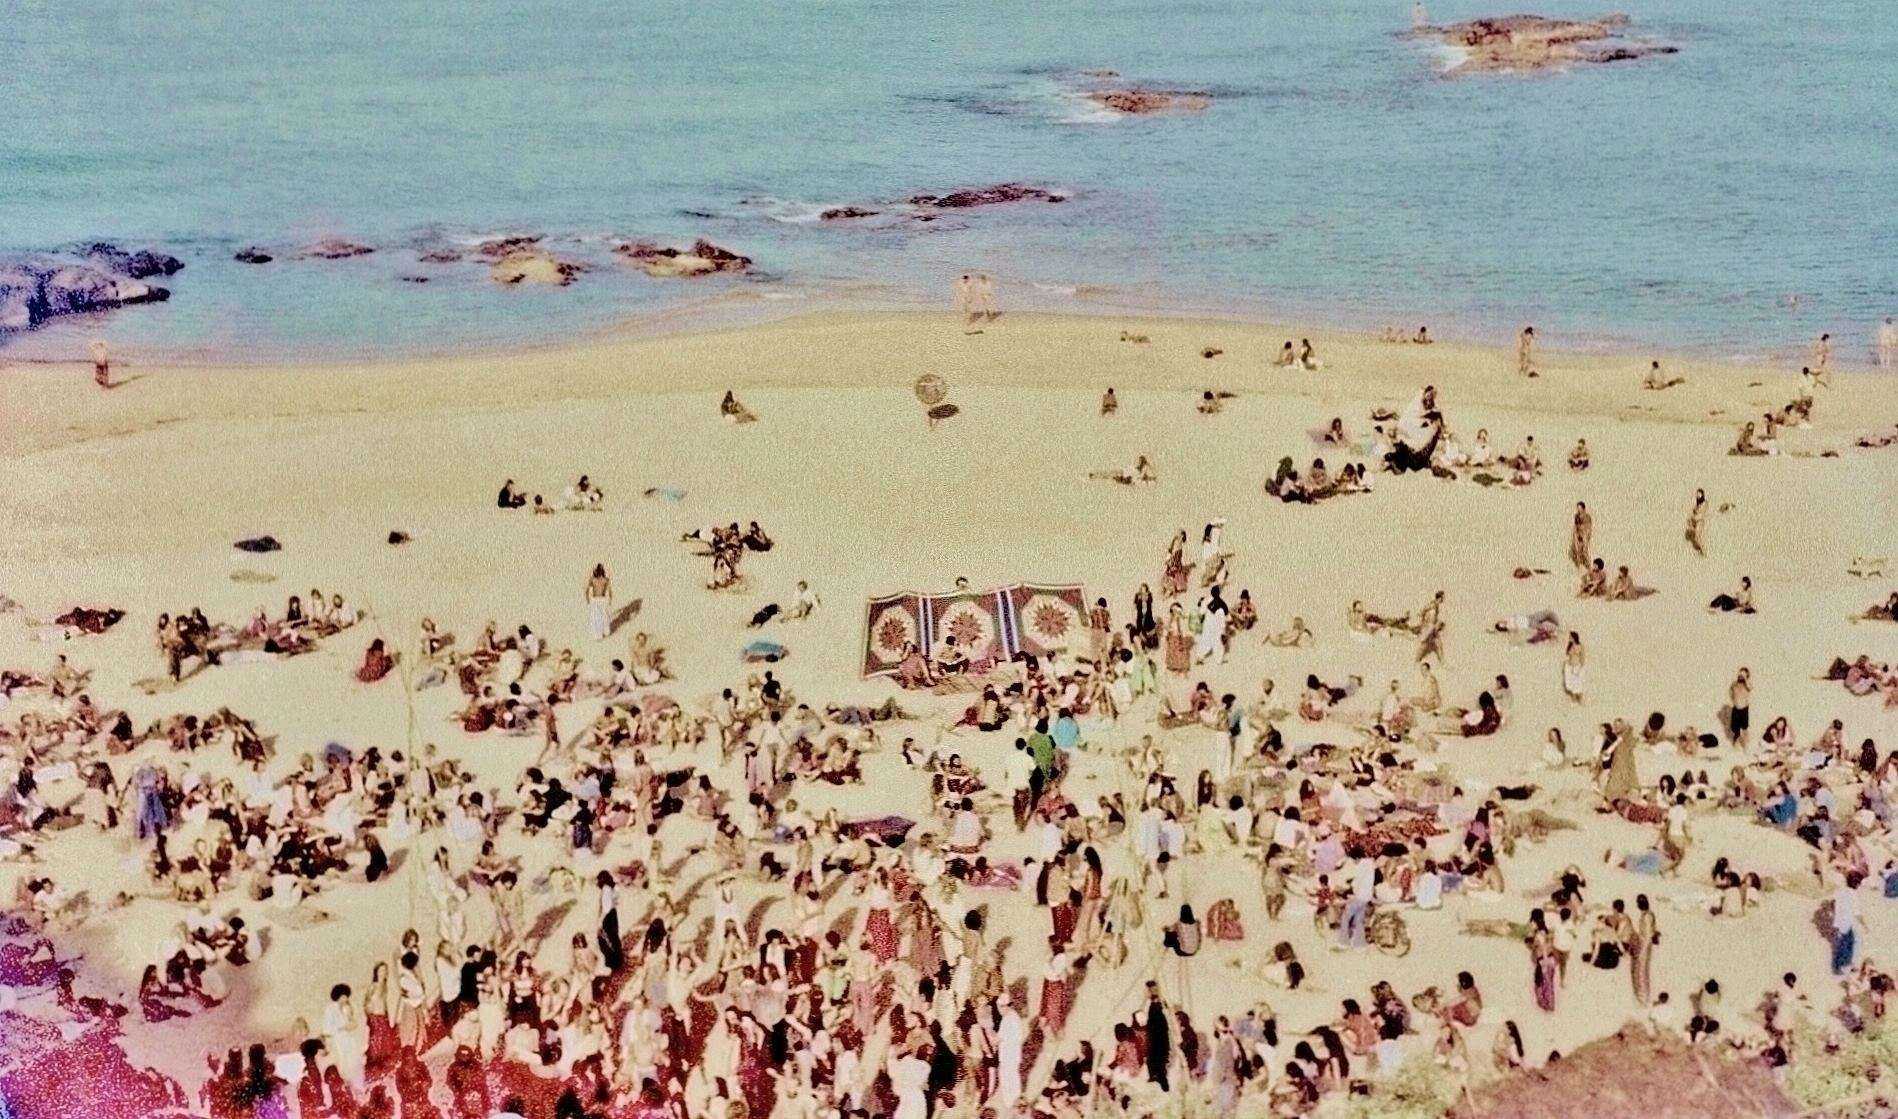 Late 1977, Full moon party morning on South Anjuna beach (Photo by Sunny Schneider).